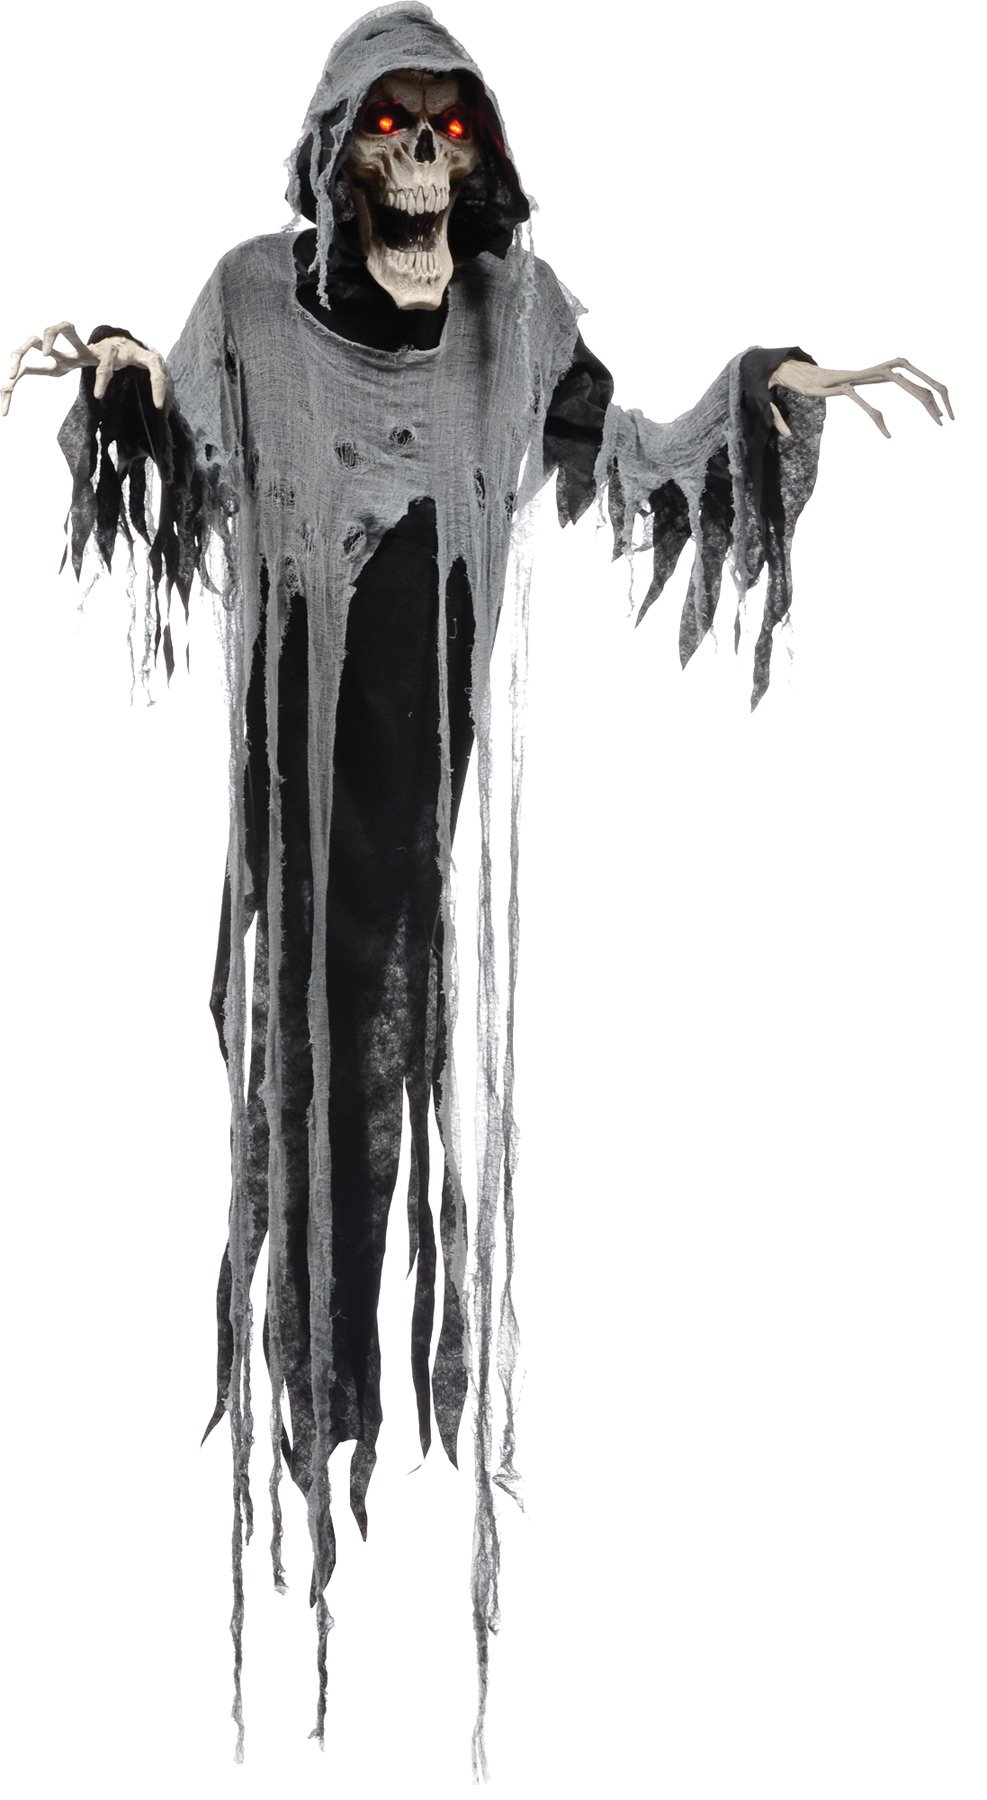 Hanging Reaper 72 Inches Animated Halloween Prop Haunted House Yard Scary Decor by Mario Chiodo (Image #1)